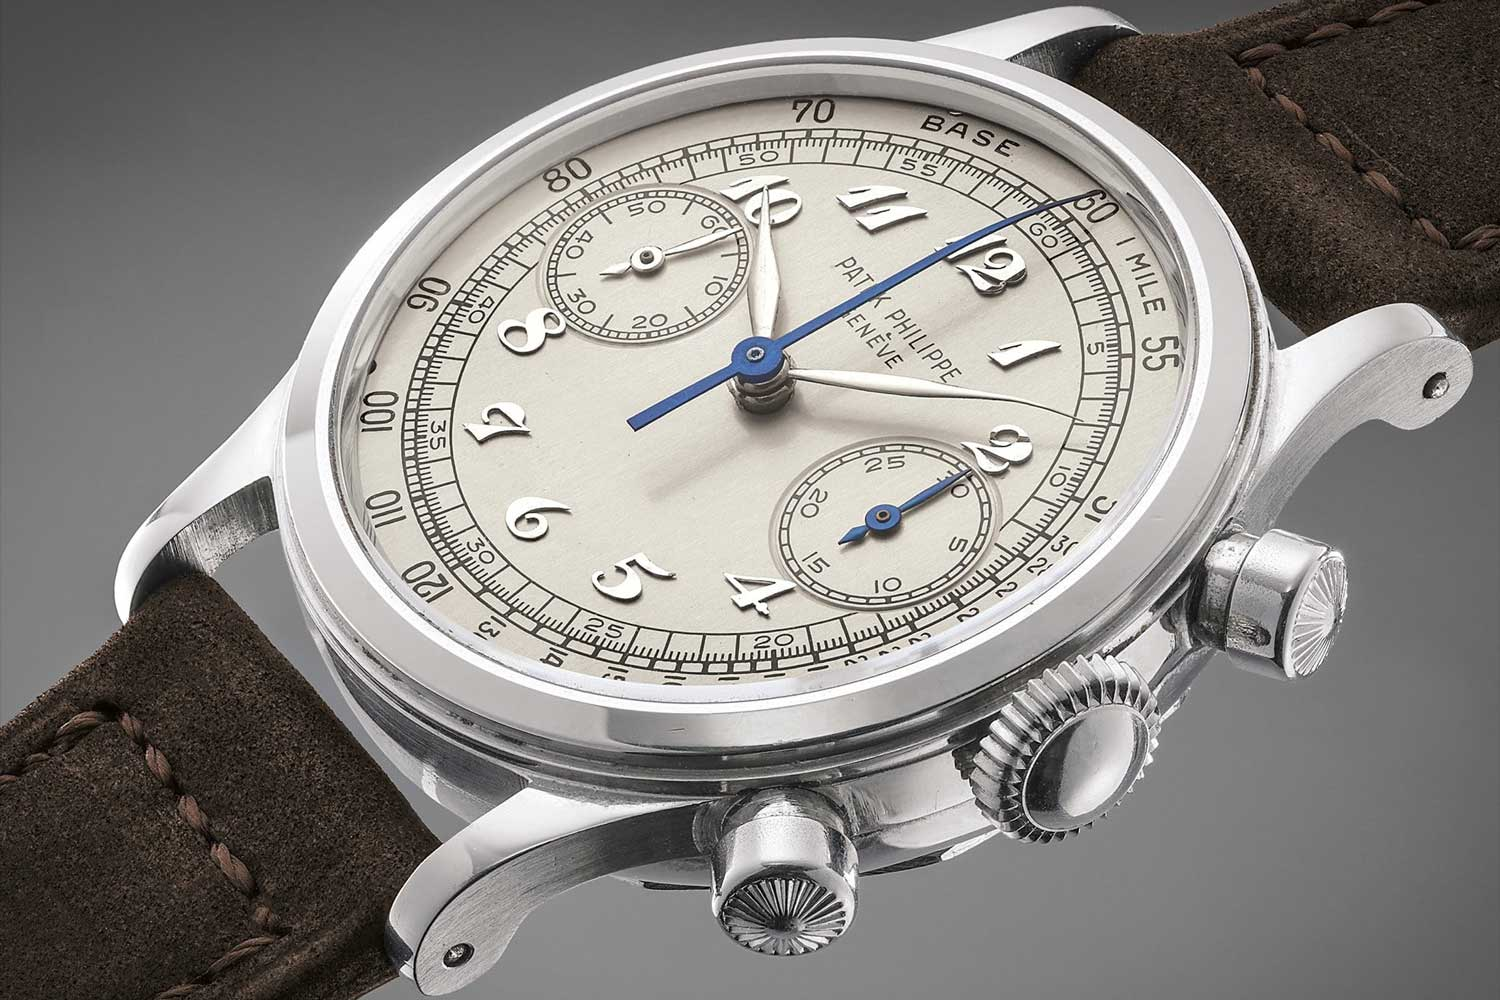 1950 Patek Philippe chronograph ref. 1463 in steel with Breguet numerals, featuring the famed François Borgel and the beloved crown and chronograph pusher that is today synonymous with the 1463 (Image: phillipswatches.com)